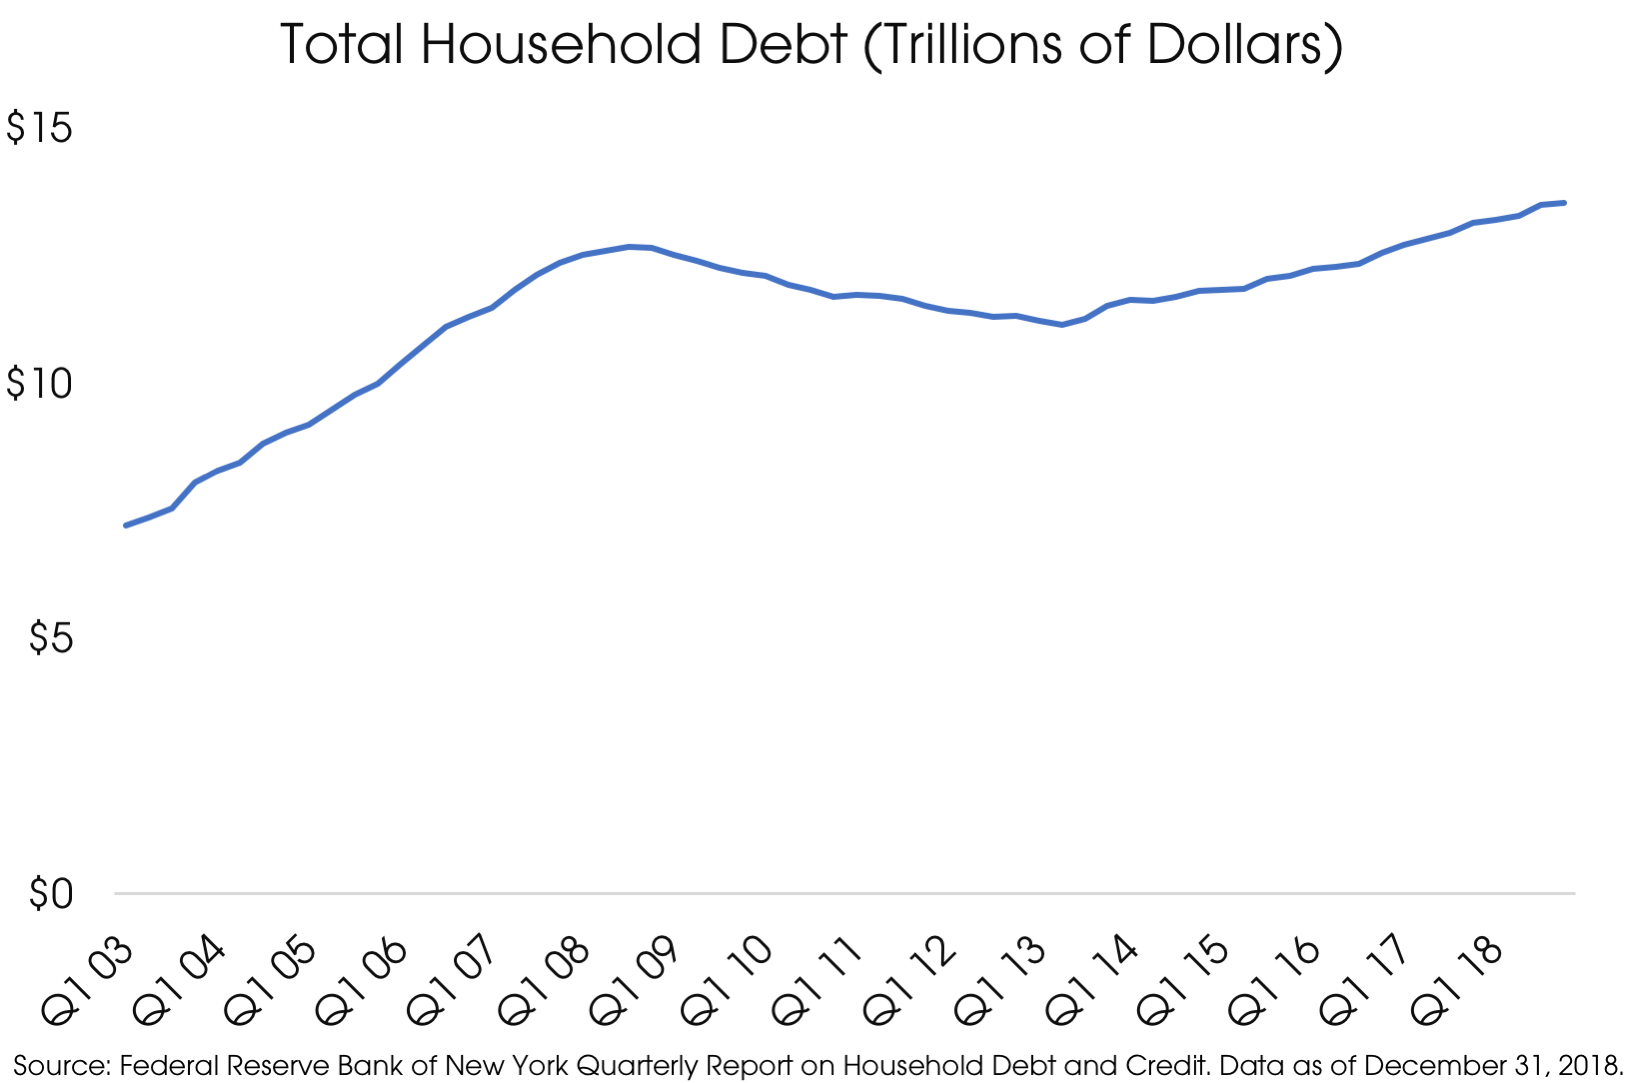 04152019_Total Household Debt.png